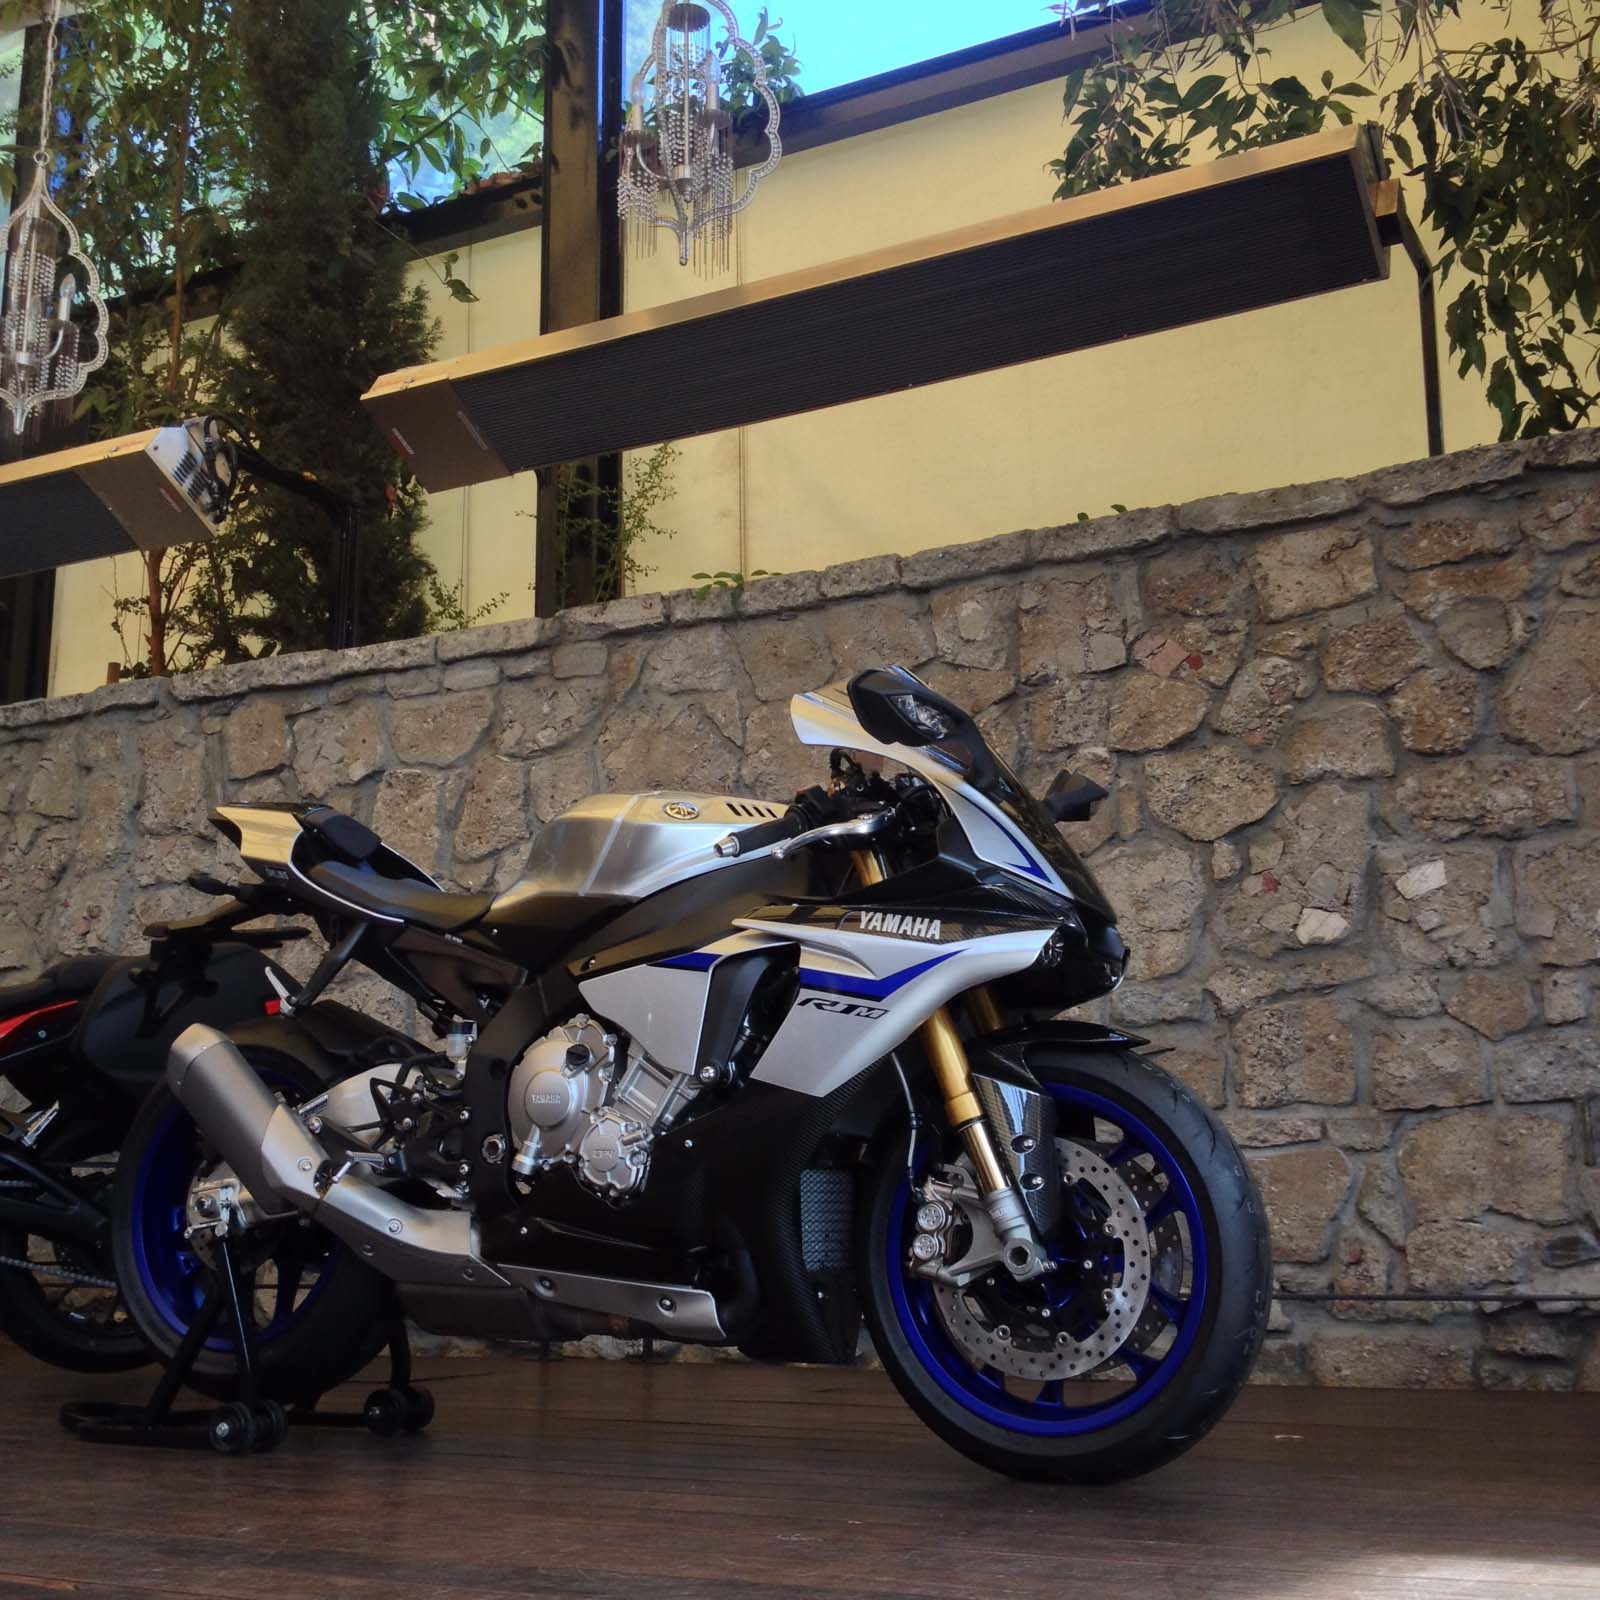 Here are the First Photos of the 2015 Yamaha YZF-R1 - Asphalt & Rubber